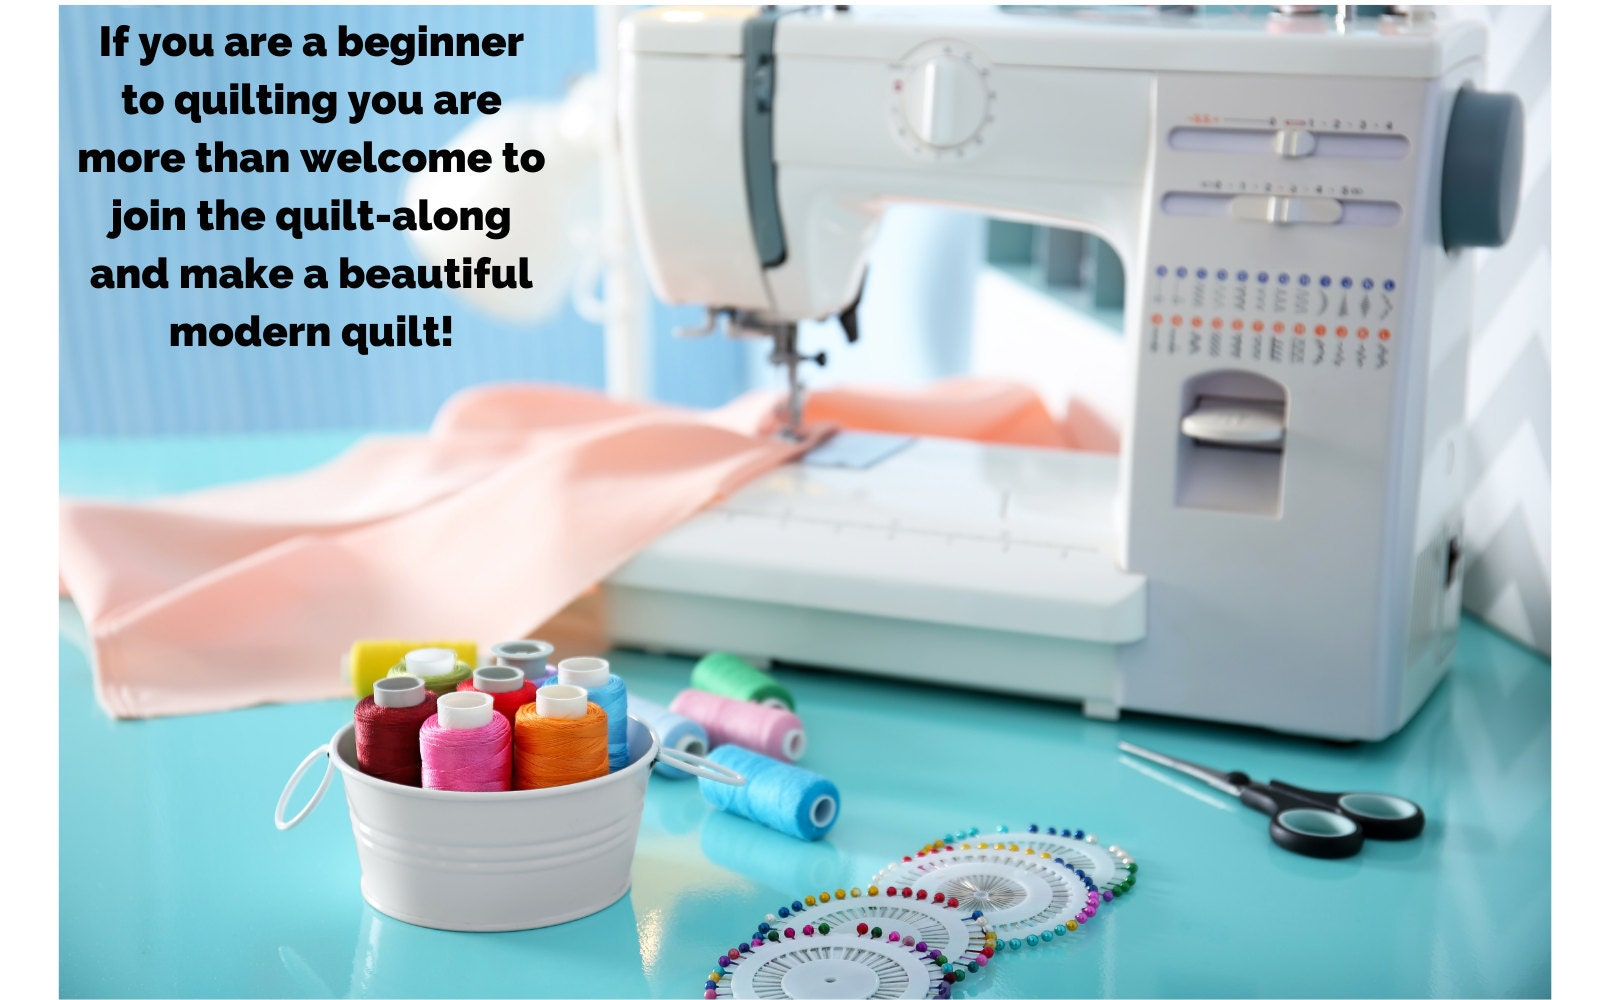 If you are a beginner to quilting you are more than welcome to join the quilt-along and make a beautiful modern quilt! Image shows a sewing machine with peach coloured fabric being sewn into a quilt.